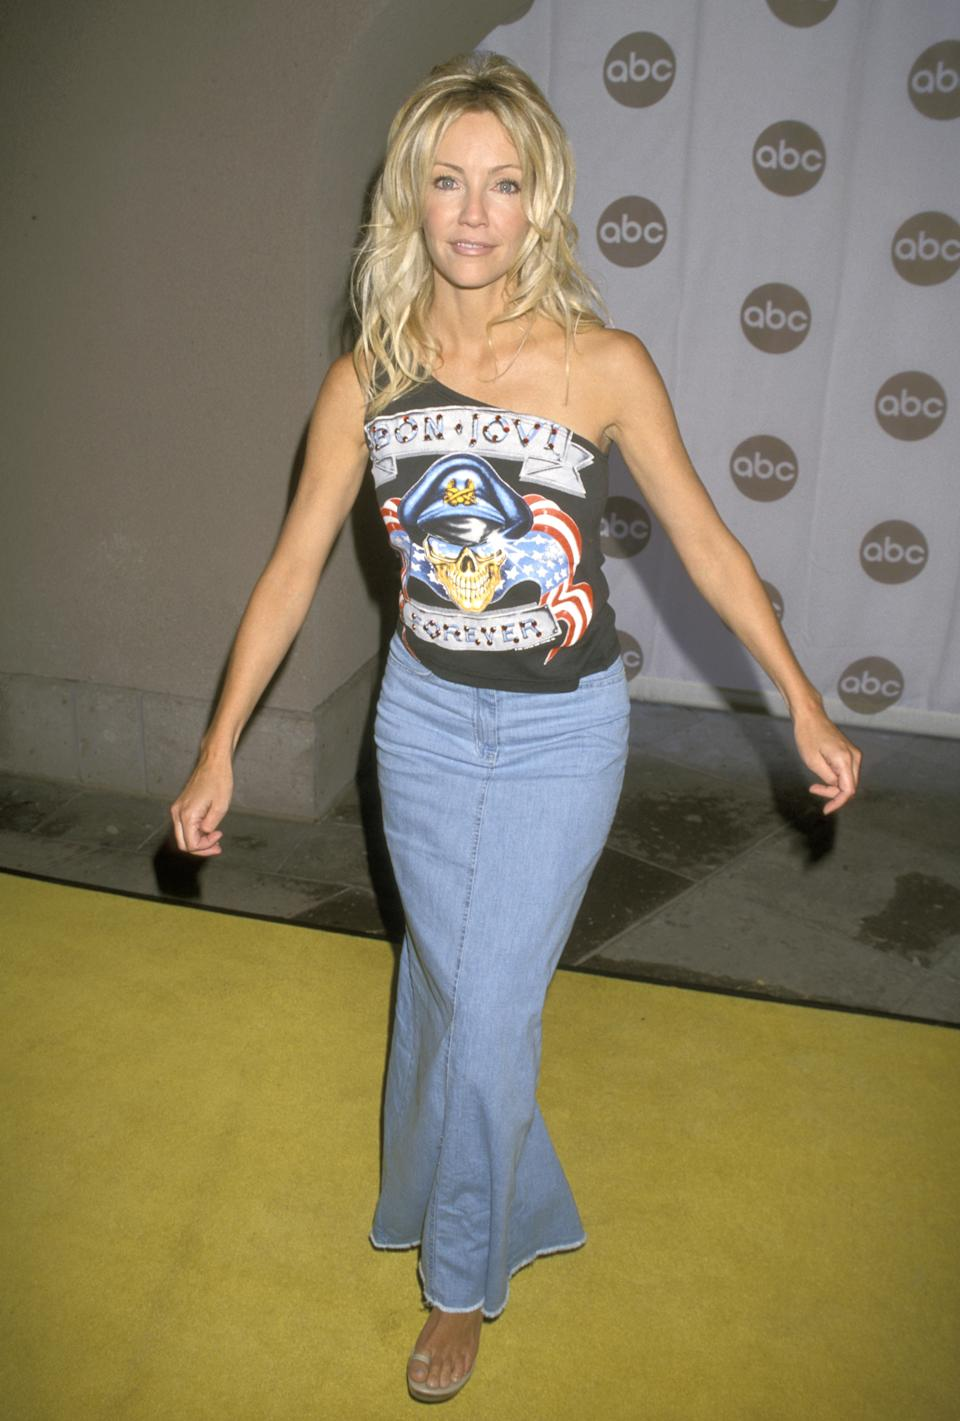 Heather Locklear during 2000 ABC Summer Press Tour at Ritz Carlton Hotel in Pasadena, California, United States. (Photo by Ron Galella/Ron Galella Collection via Getty Images)